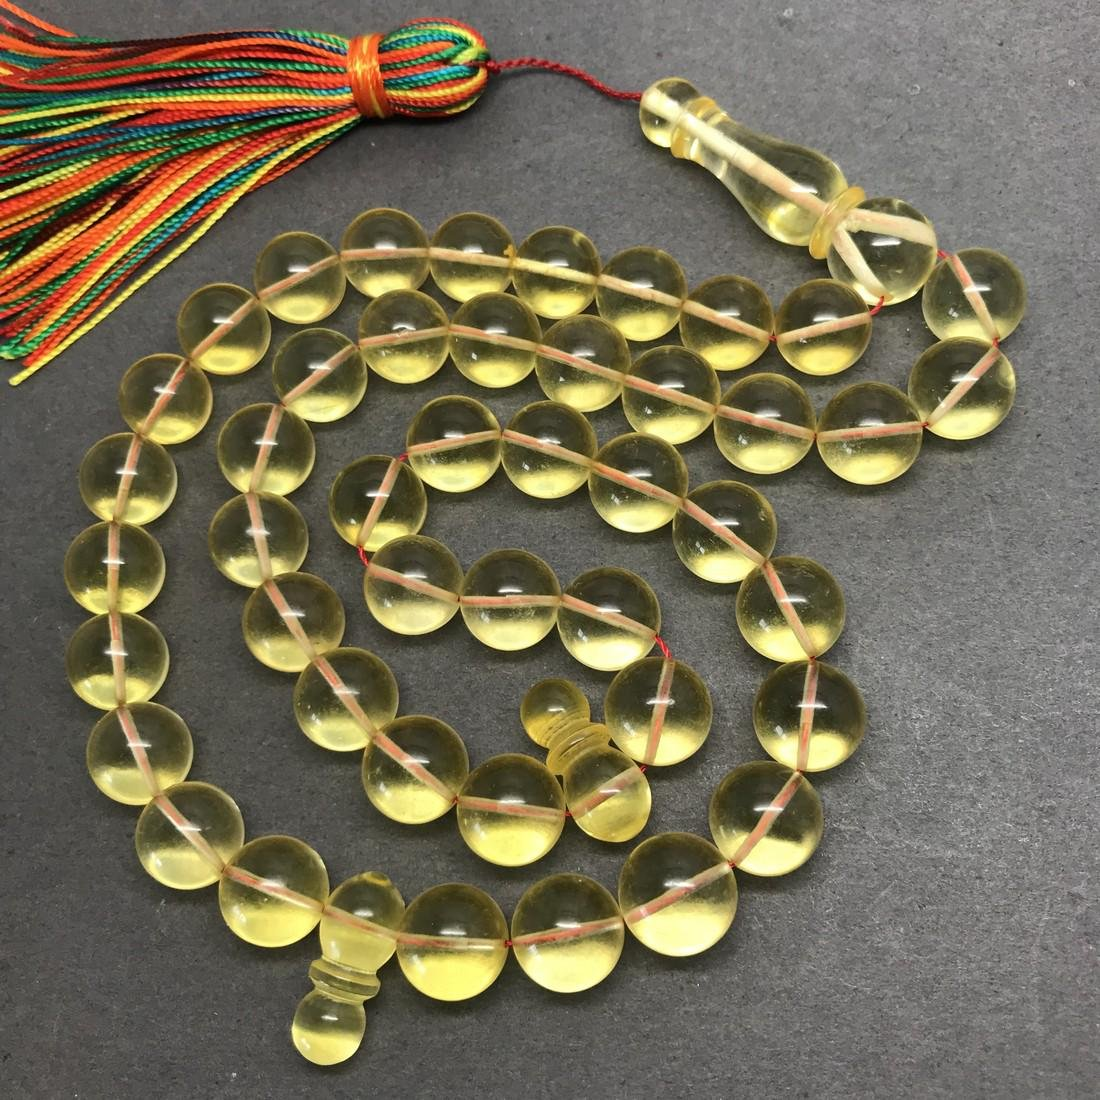 Exquisite Amber Tesbih made from Round Amber beads